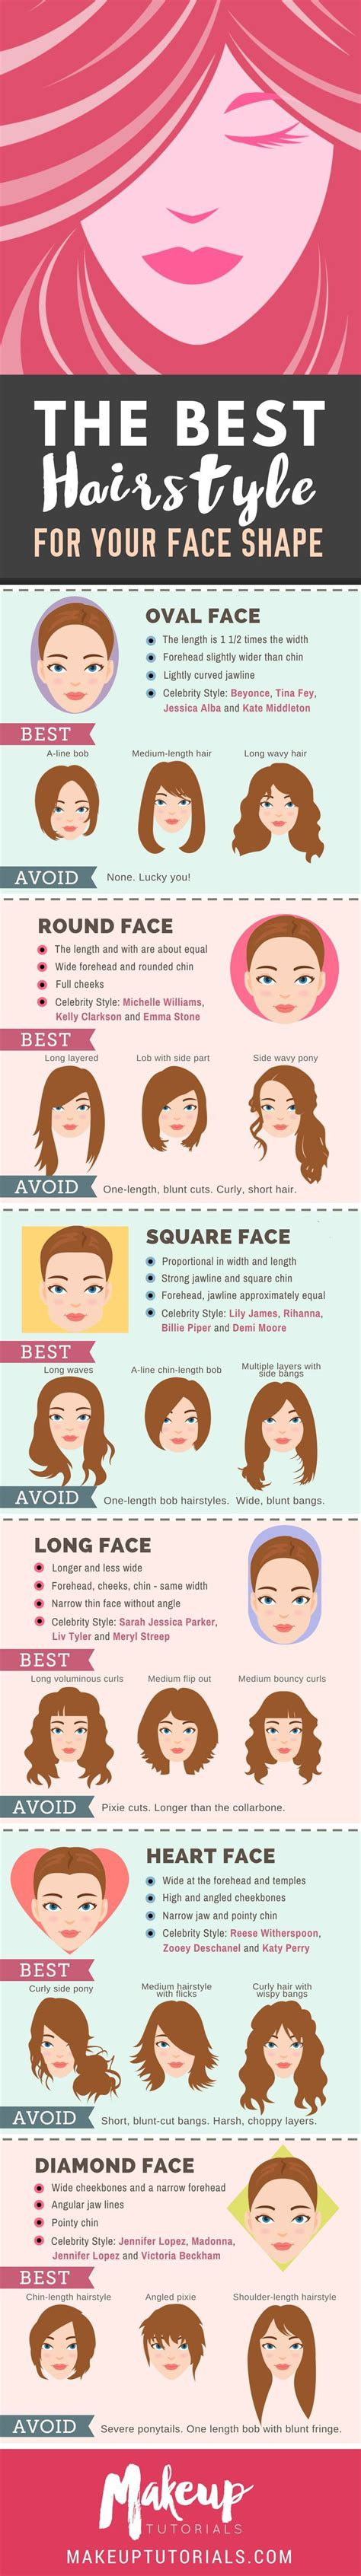 hairstyle tips best haircut for your face shape vogue india makeup tips the ultimate hairstyle guide for your face